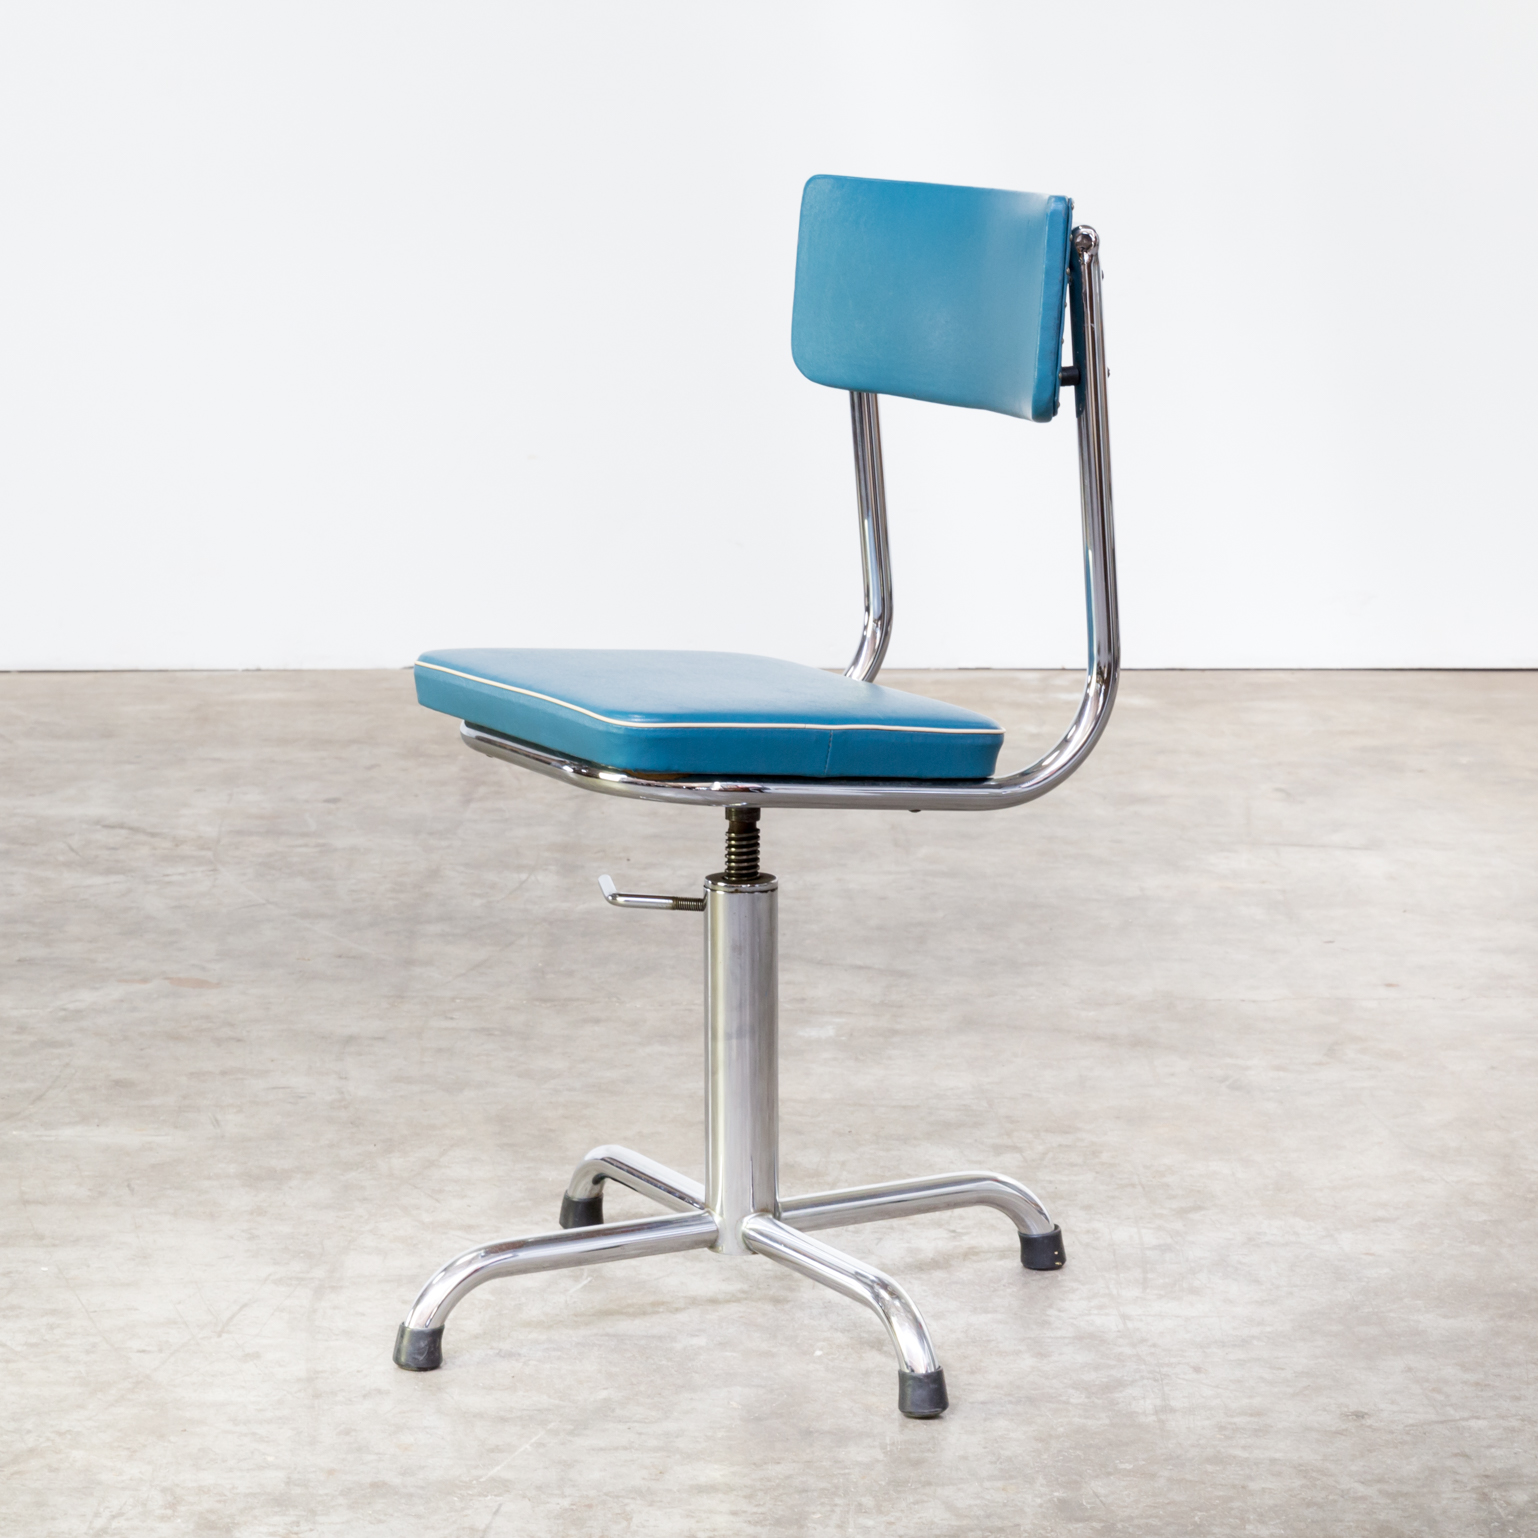 60s small office chair blauw skai with white trim barbmama for White designer chair